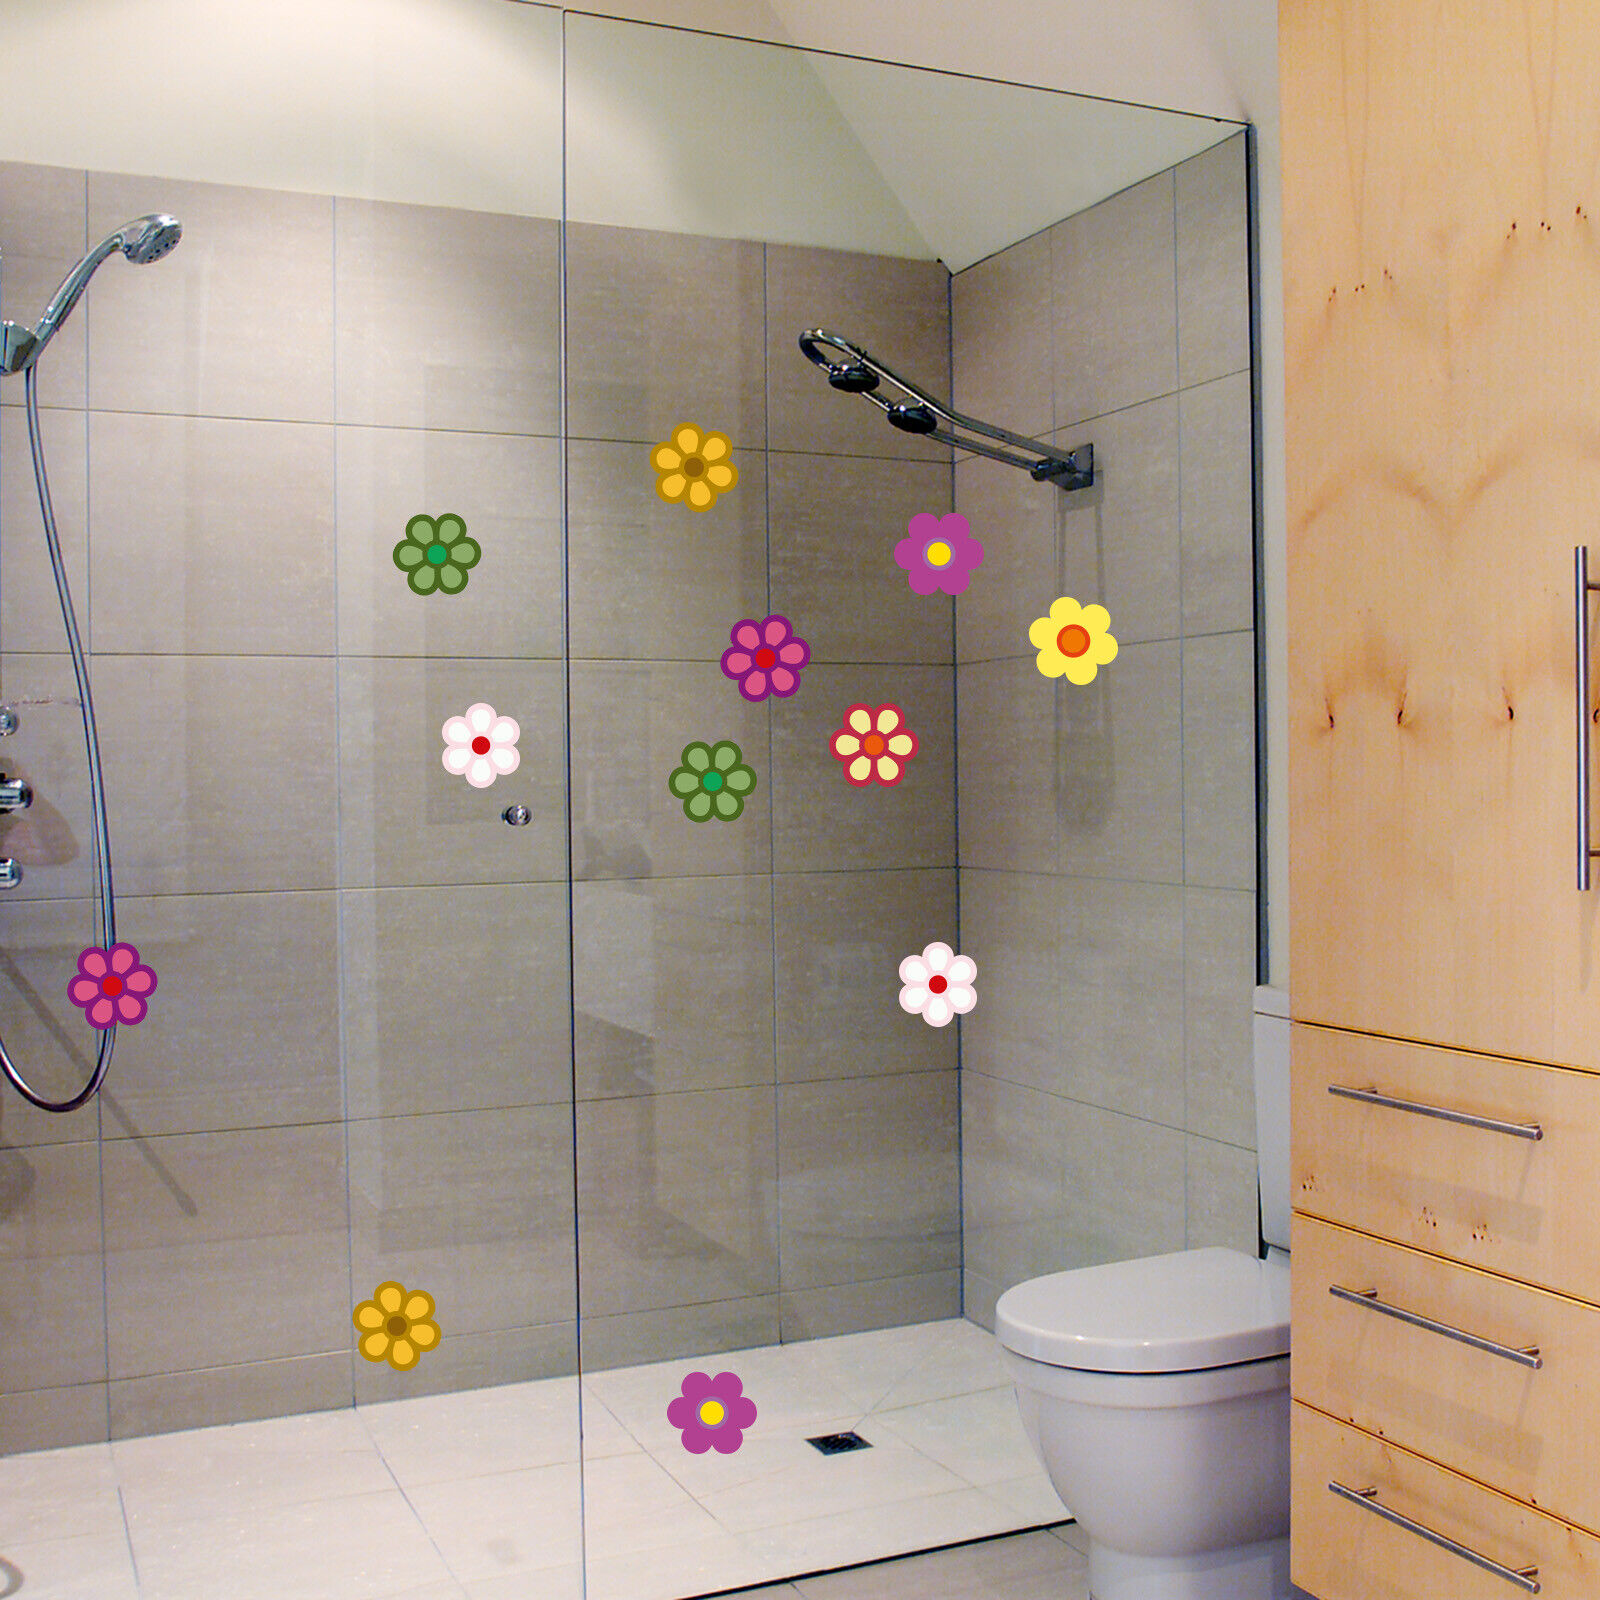 Home Decoration - SET OF FLOWERS Sticker Vinyl Waterproof Decal Bathroom/Home/Car/Furniture Decor